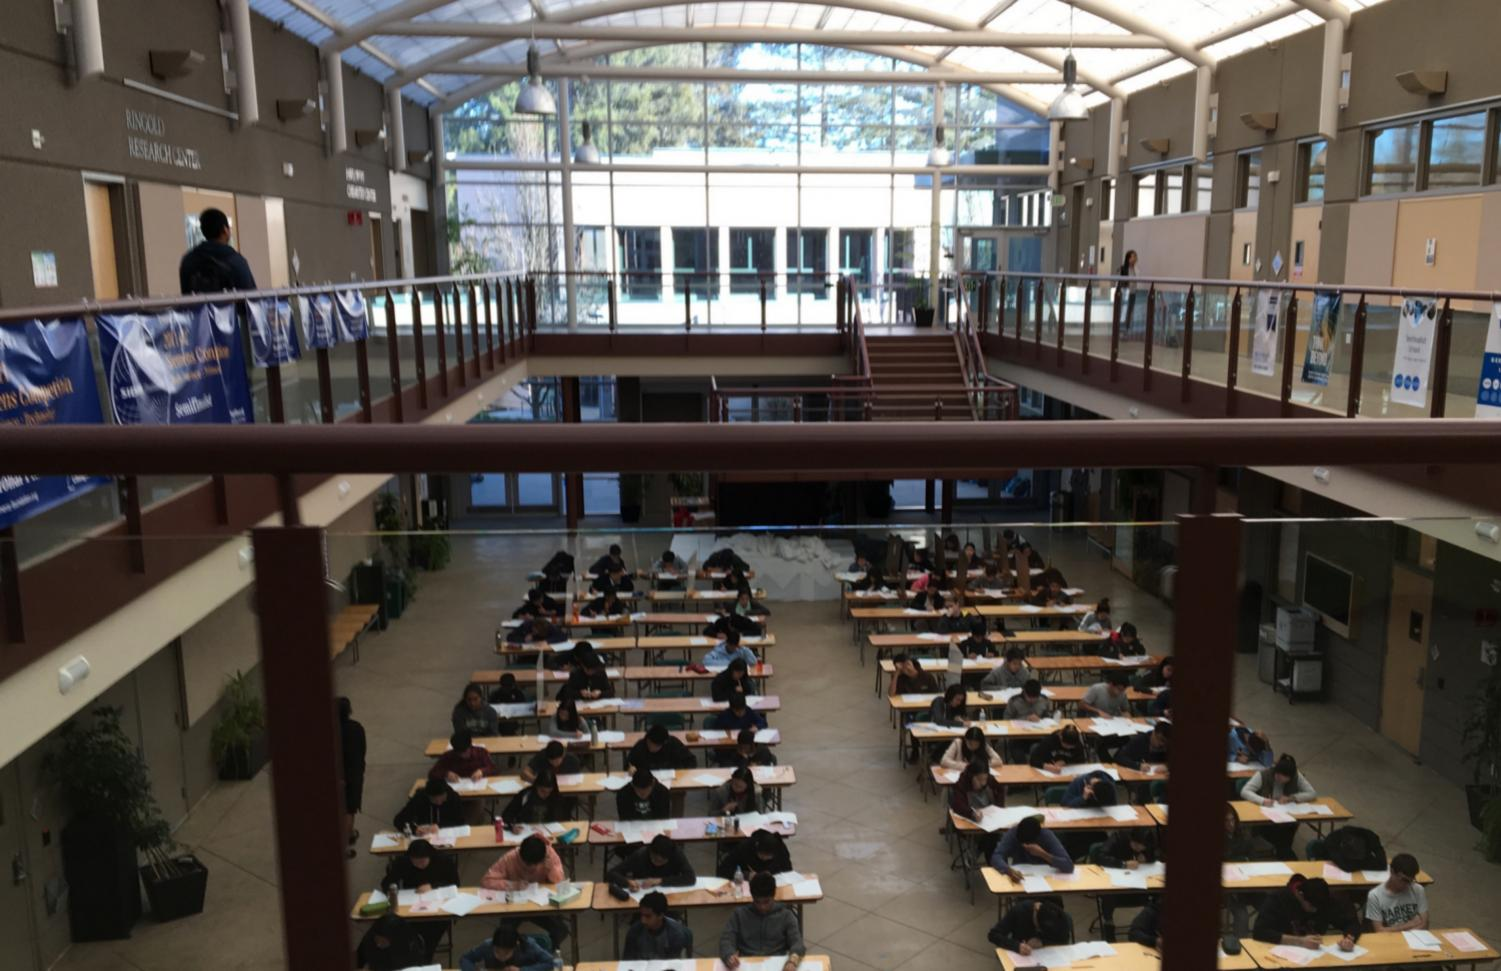 Last year's AMC 10 and 12 exams were held at 8 a.m. in Nichols Atrium on Feb. 20. According to Dr. Aiyer, around 120 students will be taking one of the exams this year, which will both be held next Thursday.